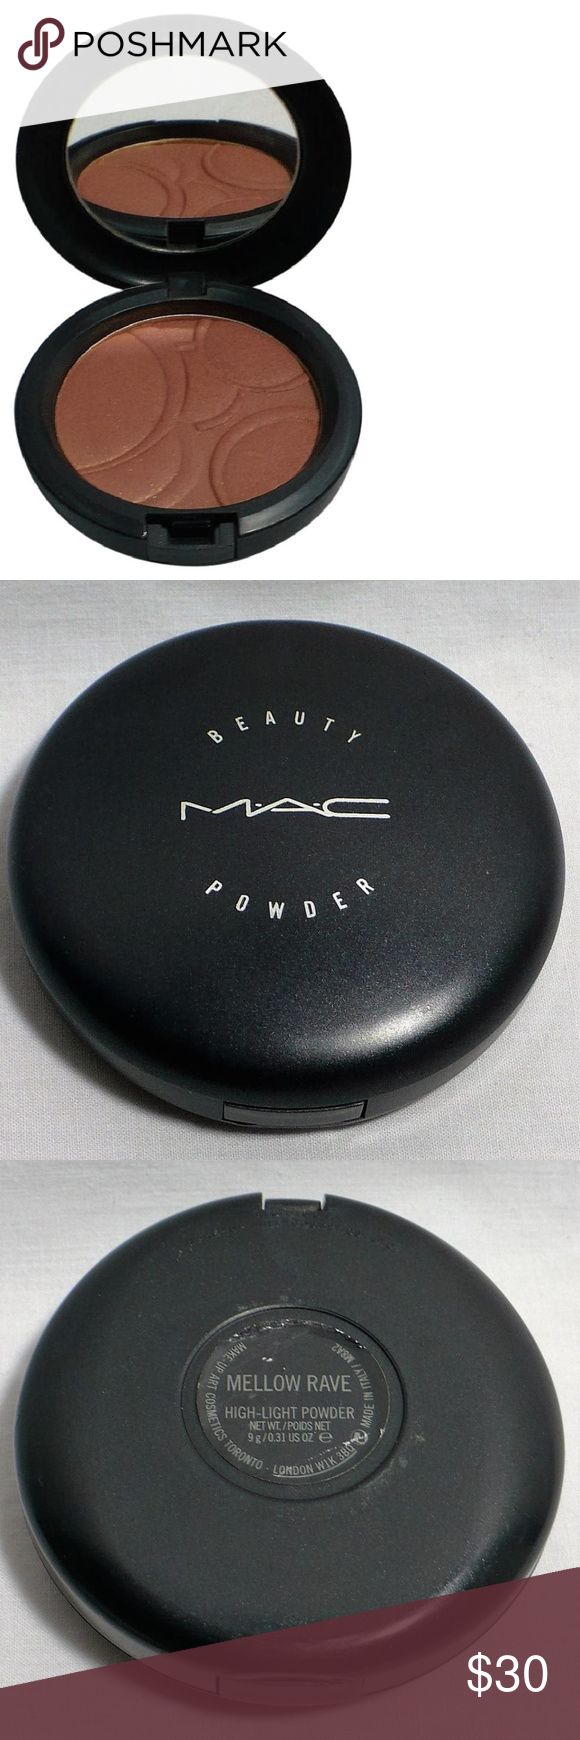 "MAC MELLOW RAVE Beauty Powder BALLOONACY Ltd Ed LE Top layer has been used. Some ""ridge"" stamp is still visible.  Review all photos carefully as they are considered part of the Item Description.  Swatch photos courtesy of beauty bloggers MAC Cosmetics Makeup Bronzer"